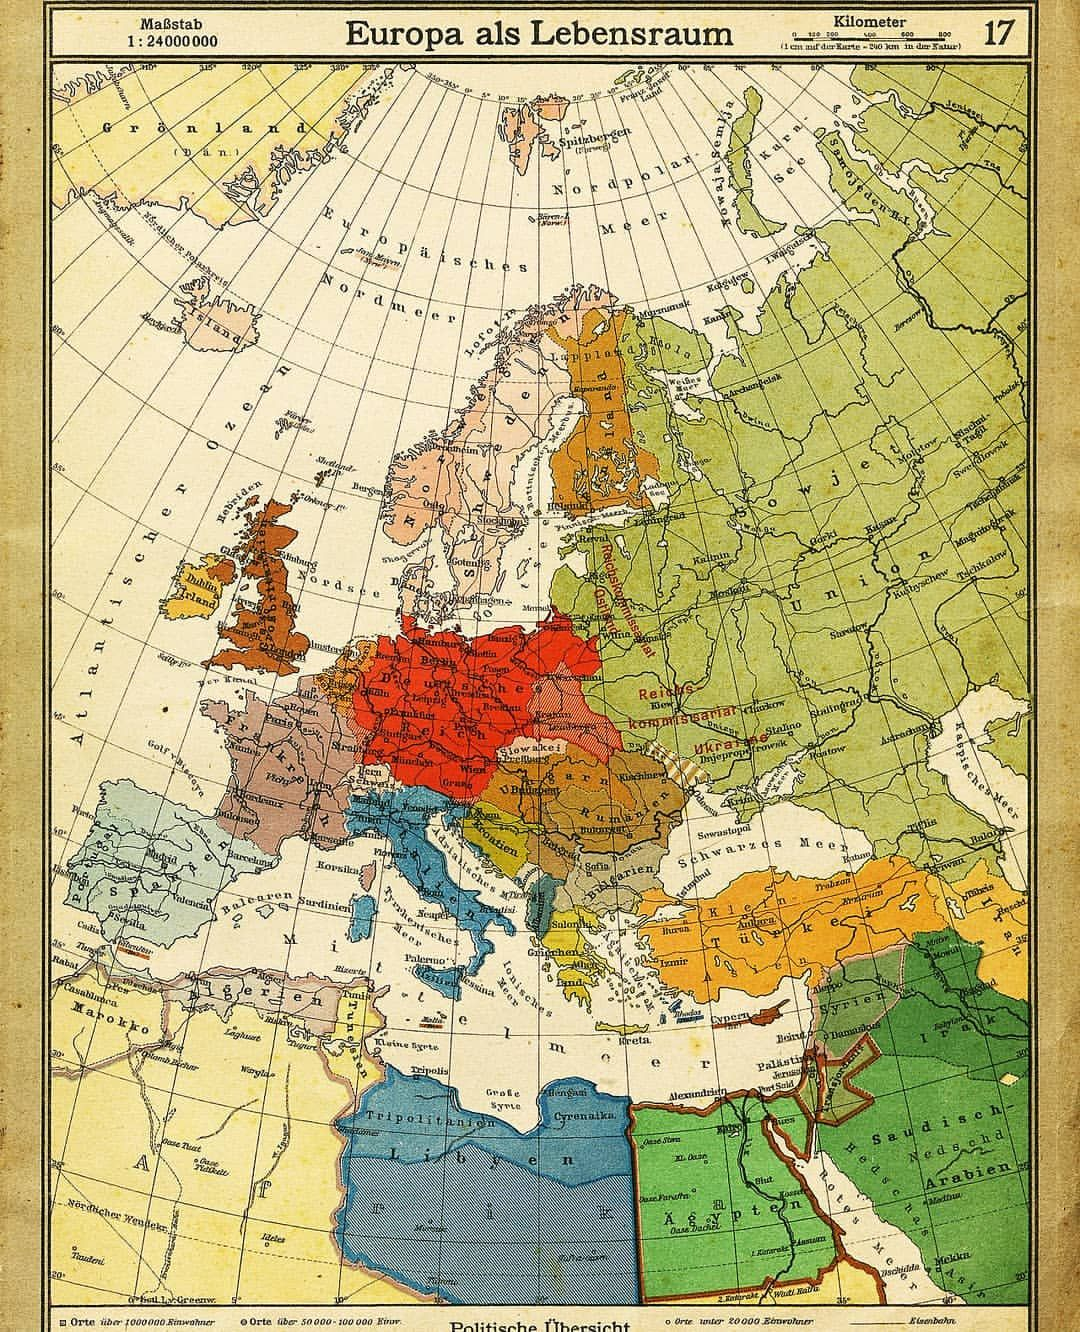 borders of european and surrounding countries in 1943 ps occupied lands are not included as